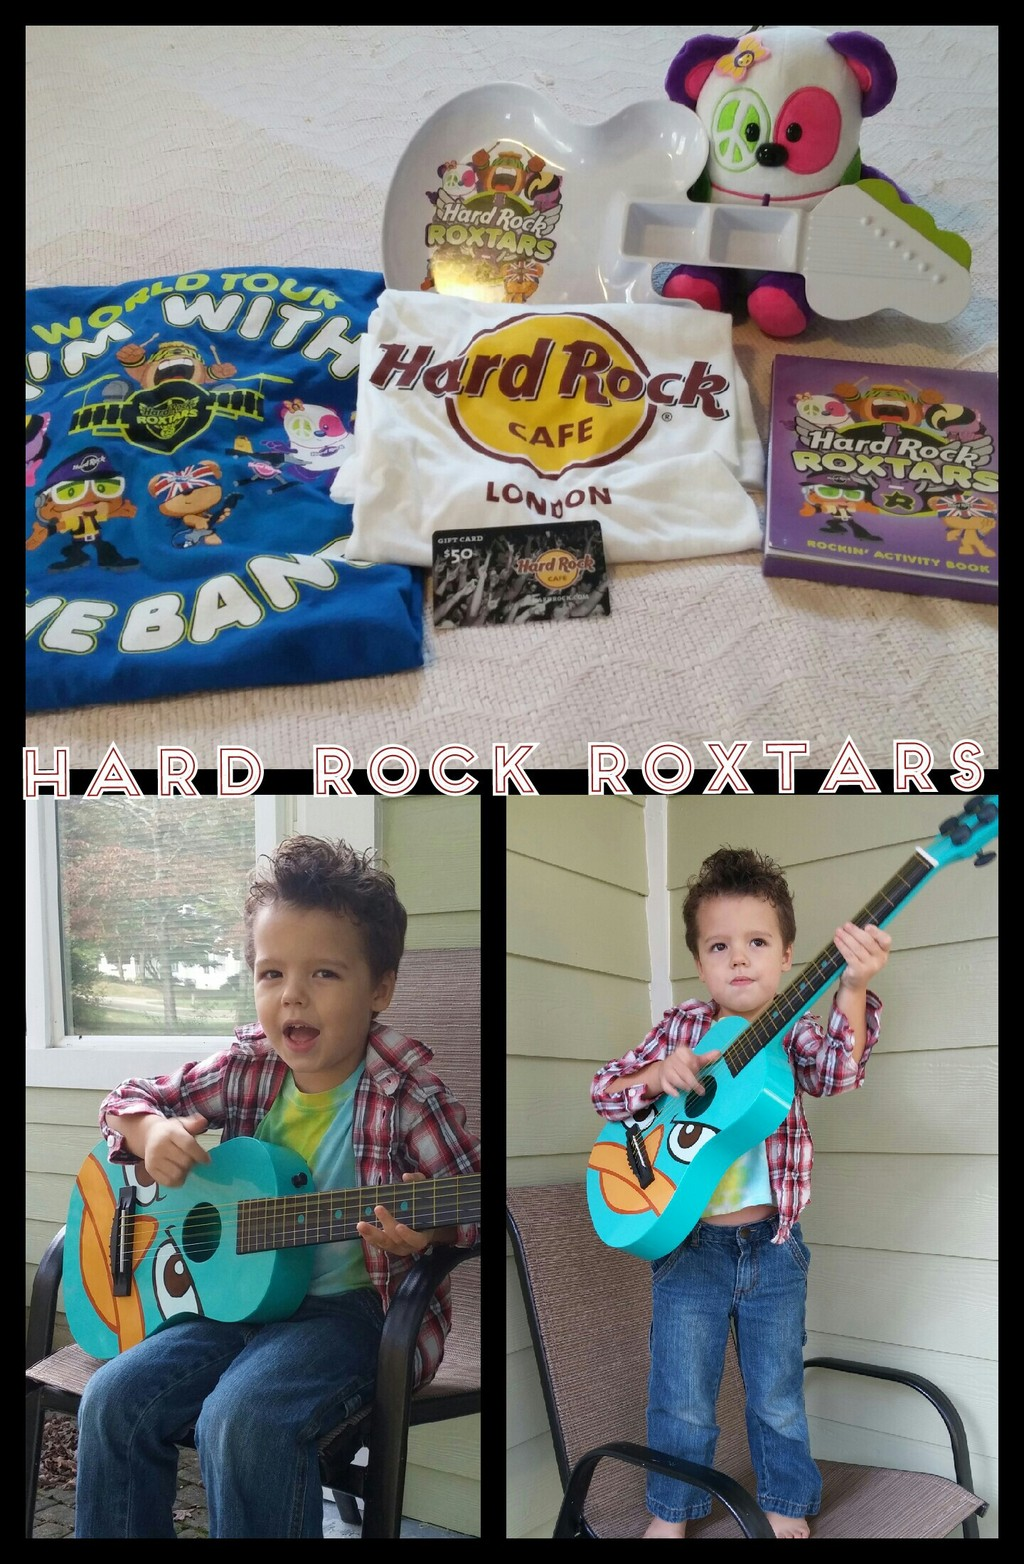 hard rock roxtars